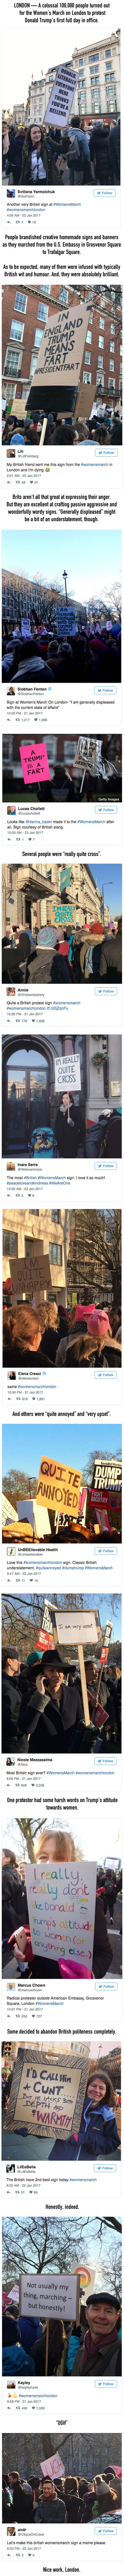 Most hilariously British signs from London's Women's March